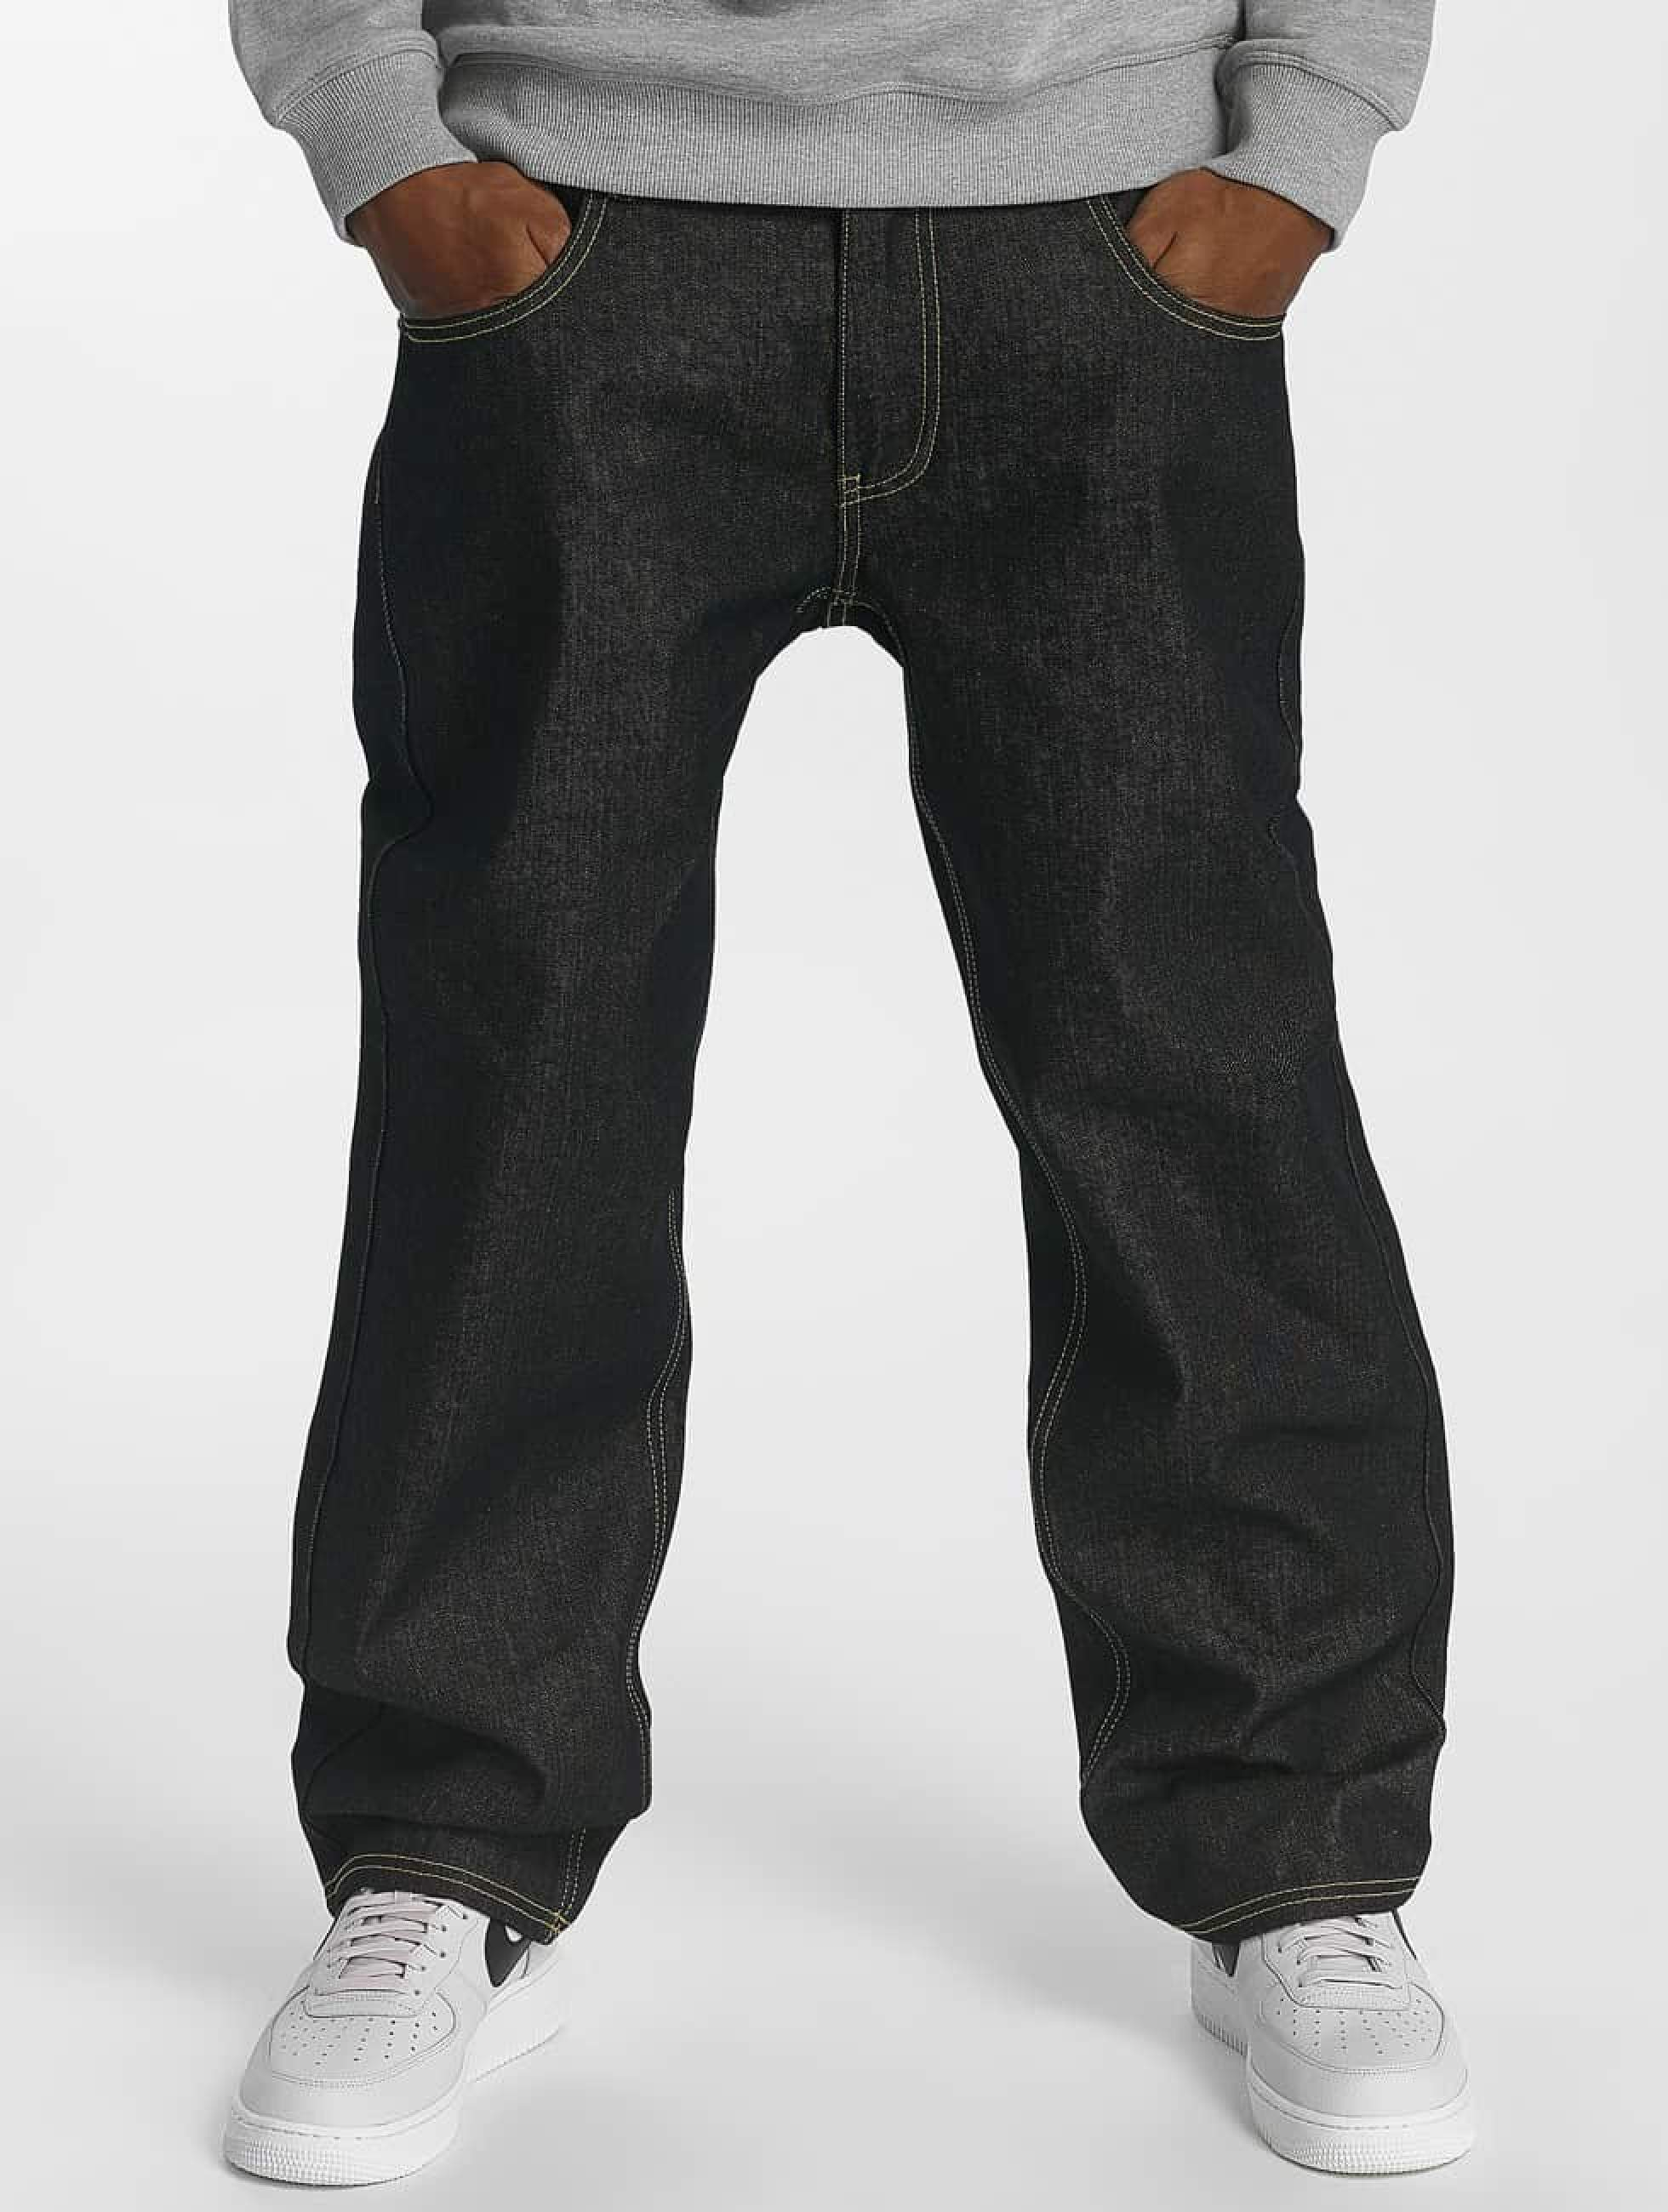 Ecko Unltd. / Loose Fit Jeans Gordon's Lo Loose Fit in black W 40 L 34